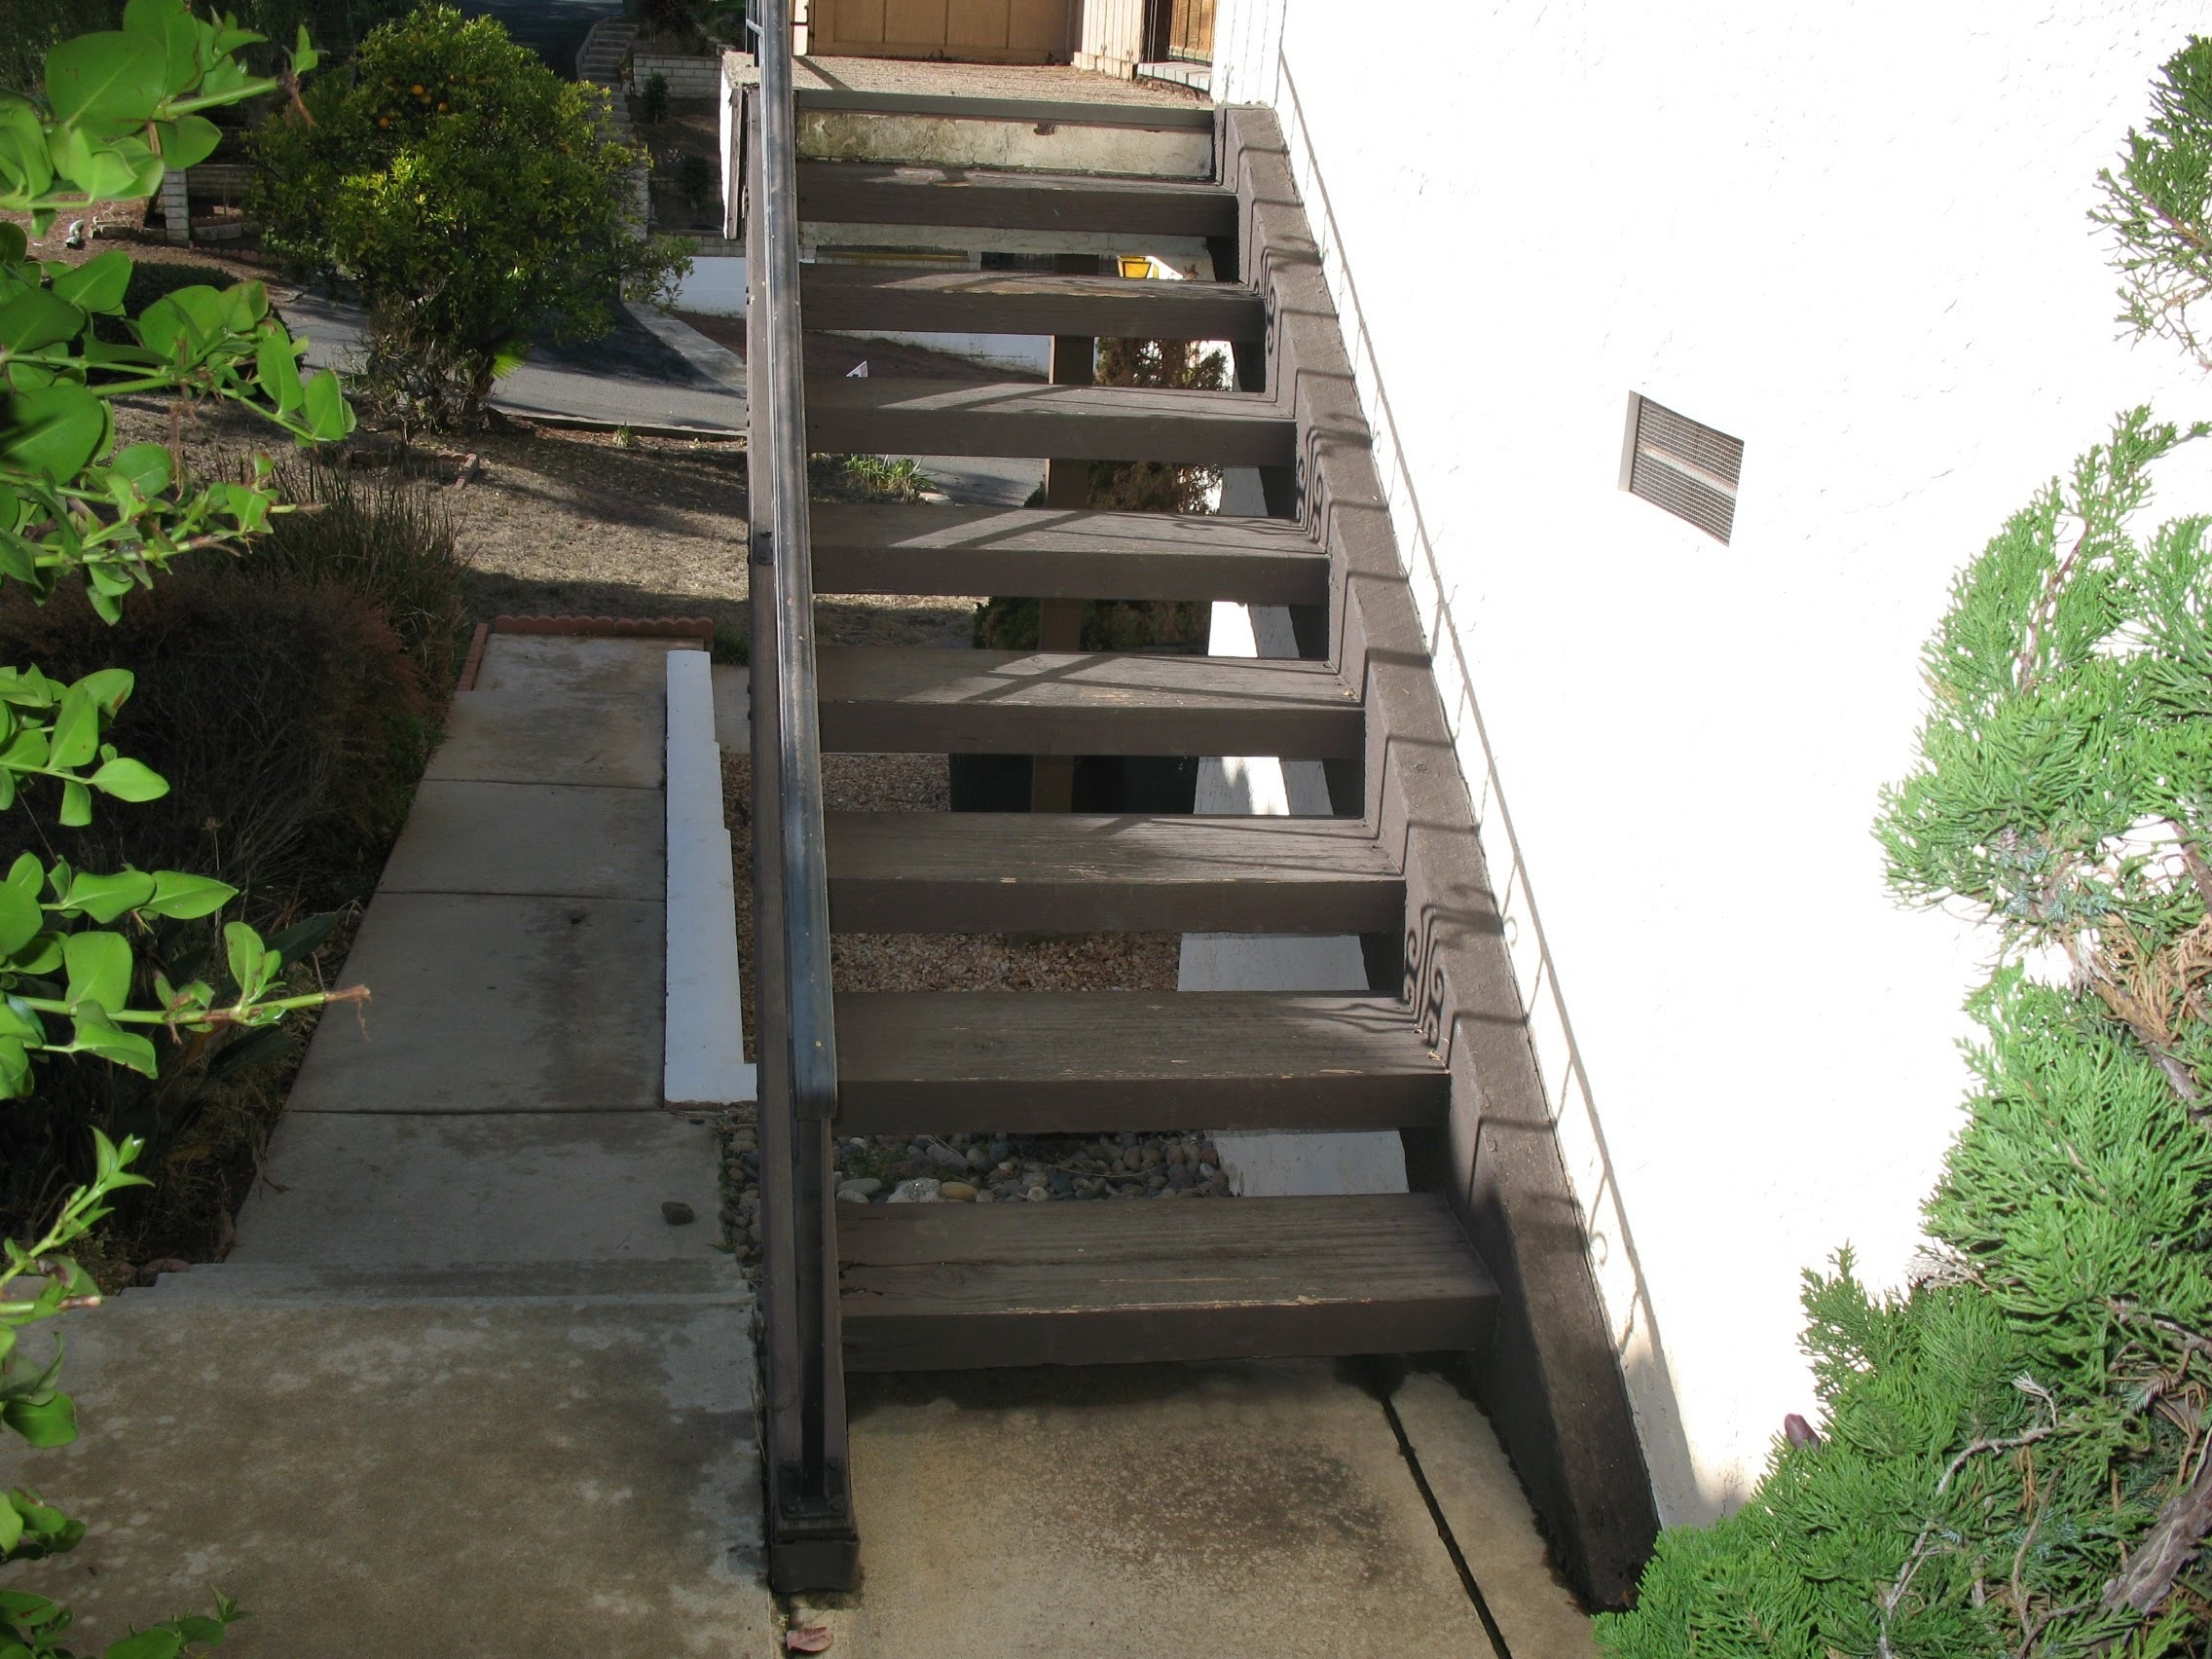 20 Ideas For Prefab Stairs Outdoor Home Depot Best | Home Depot Outdoor Stairs